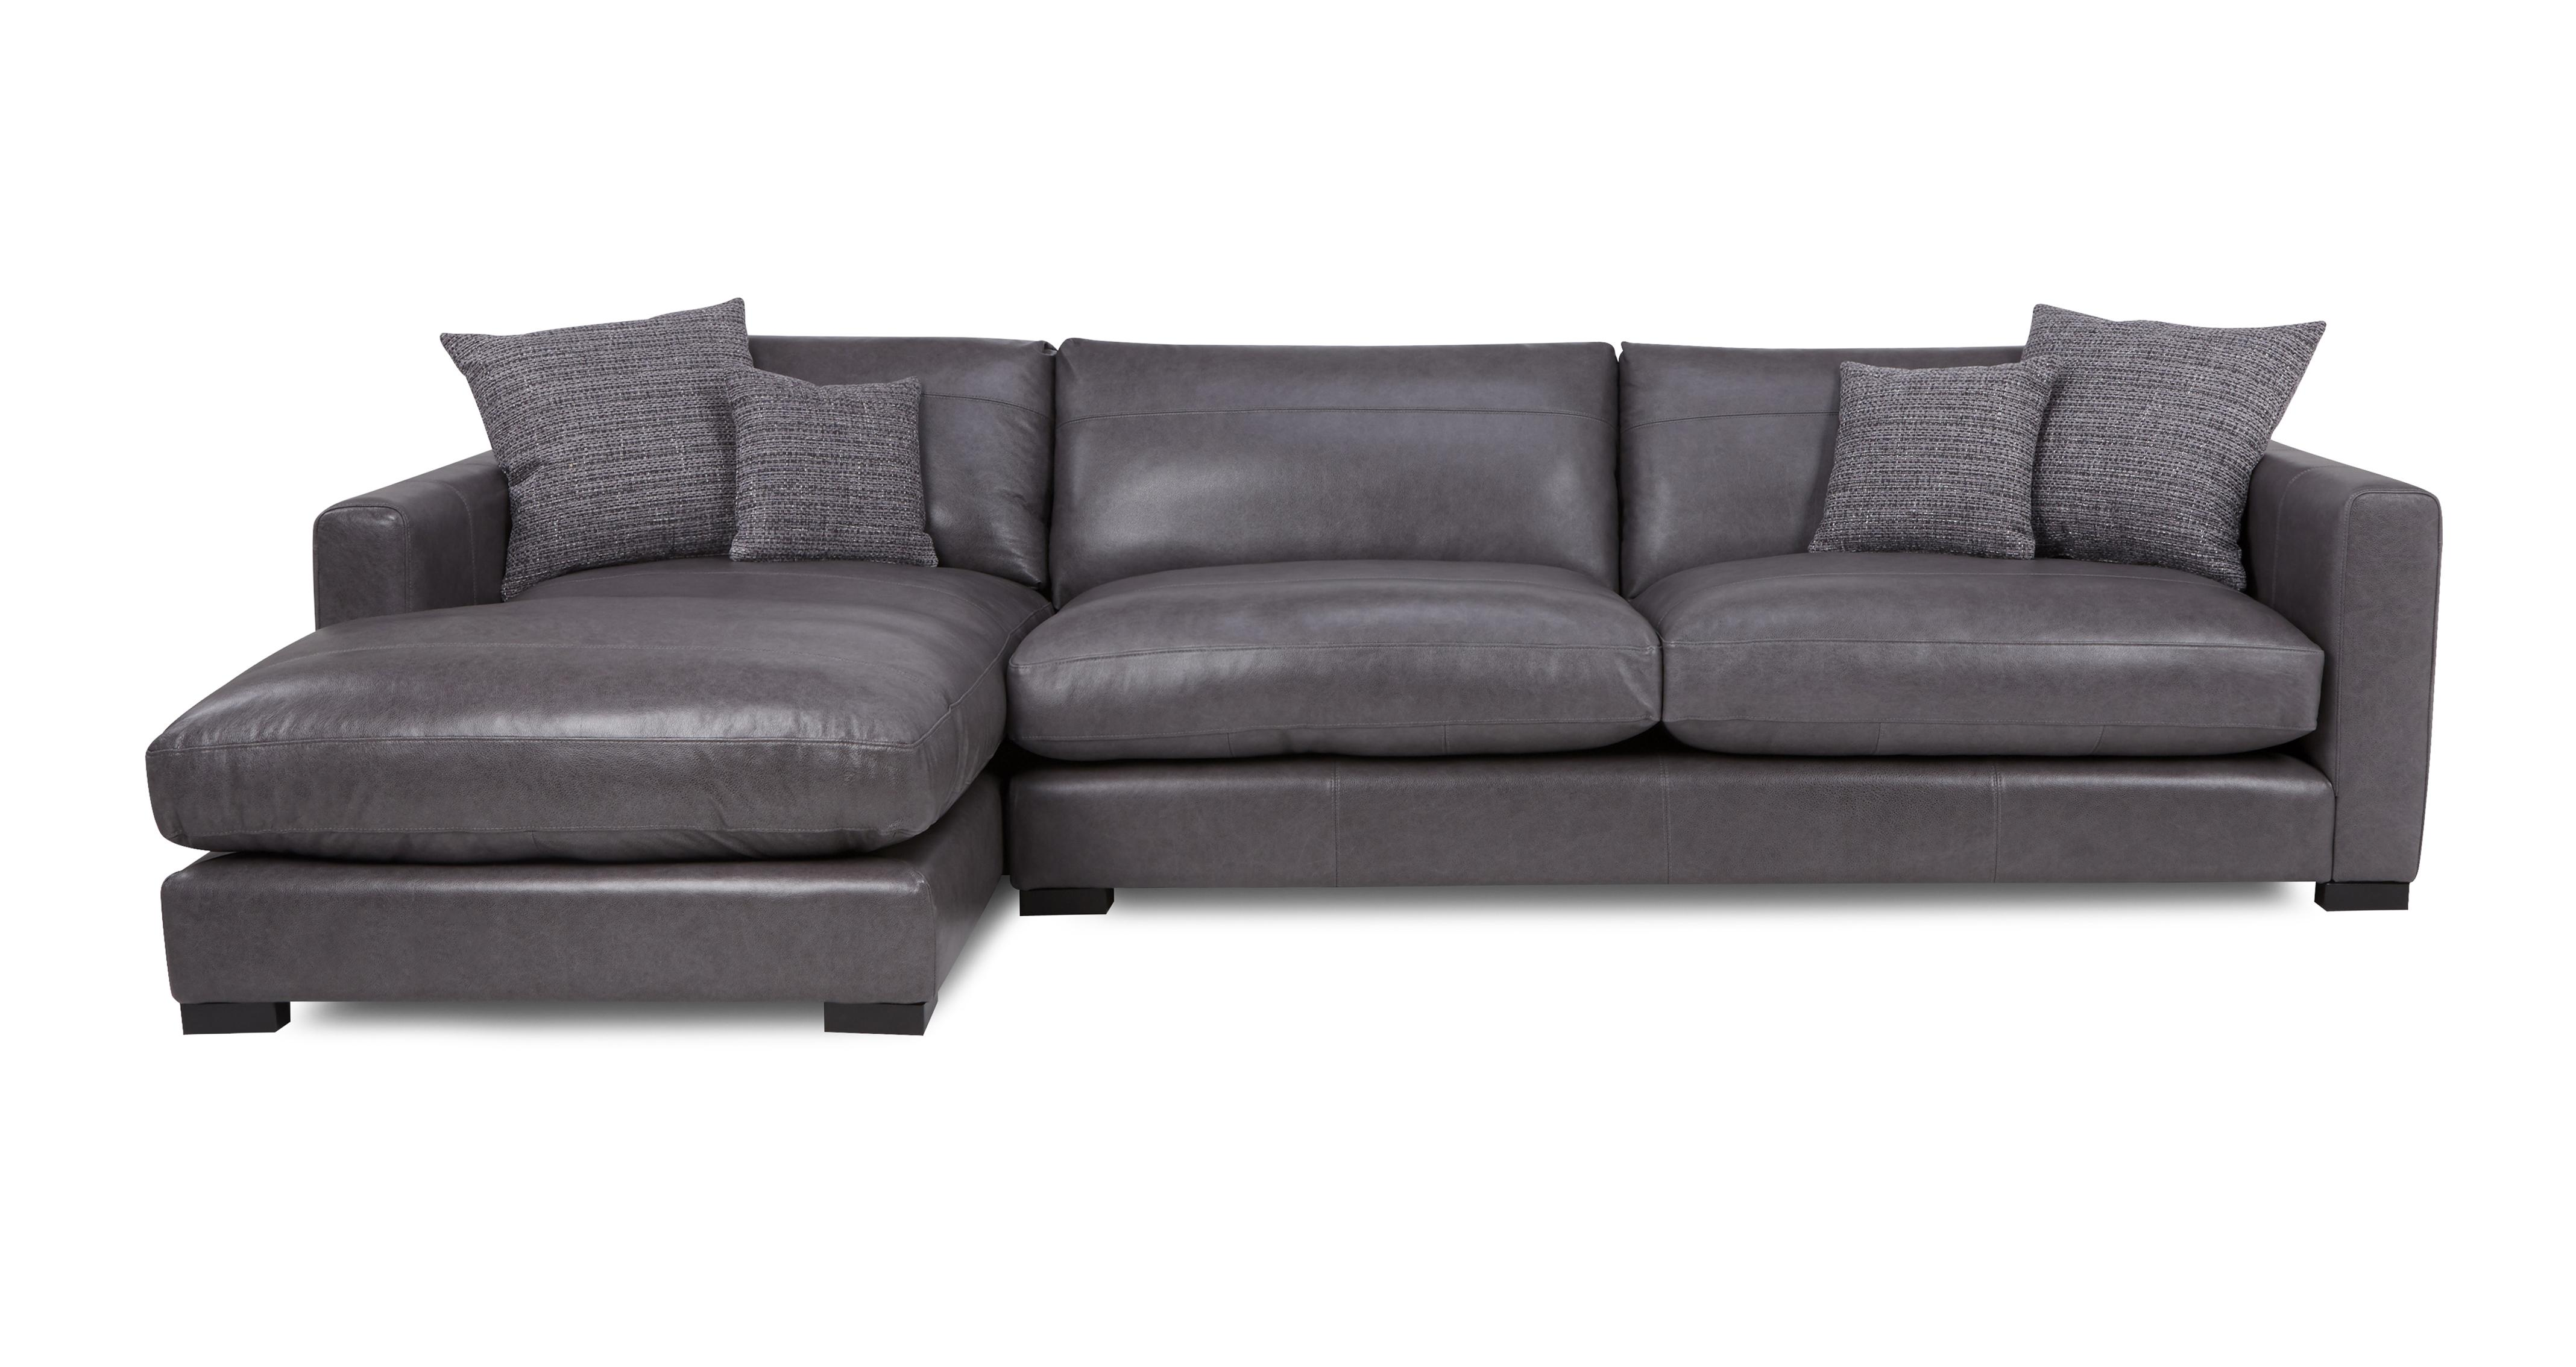 Dfs Leather Sofa Dillon Leather Left Hand Facing Large Chaise End Sofa